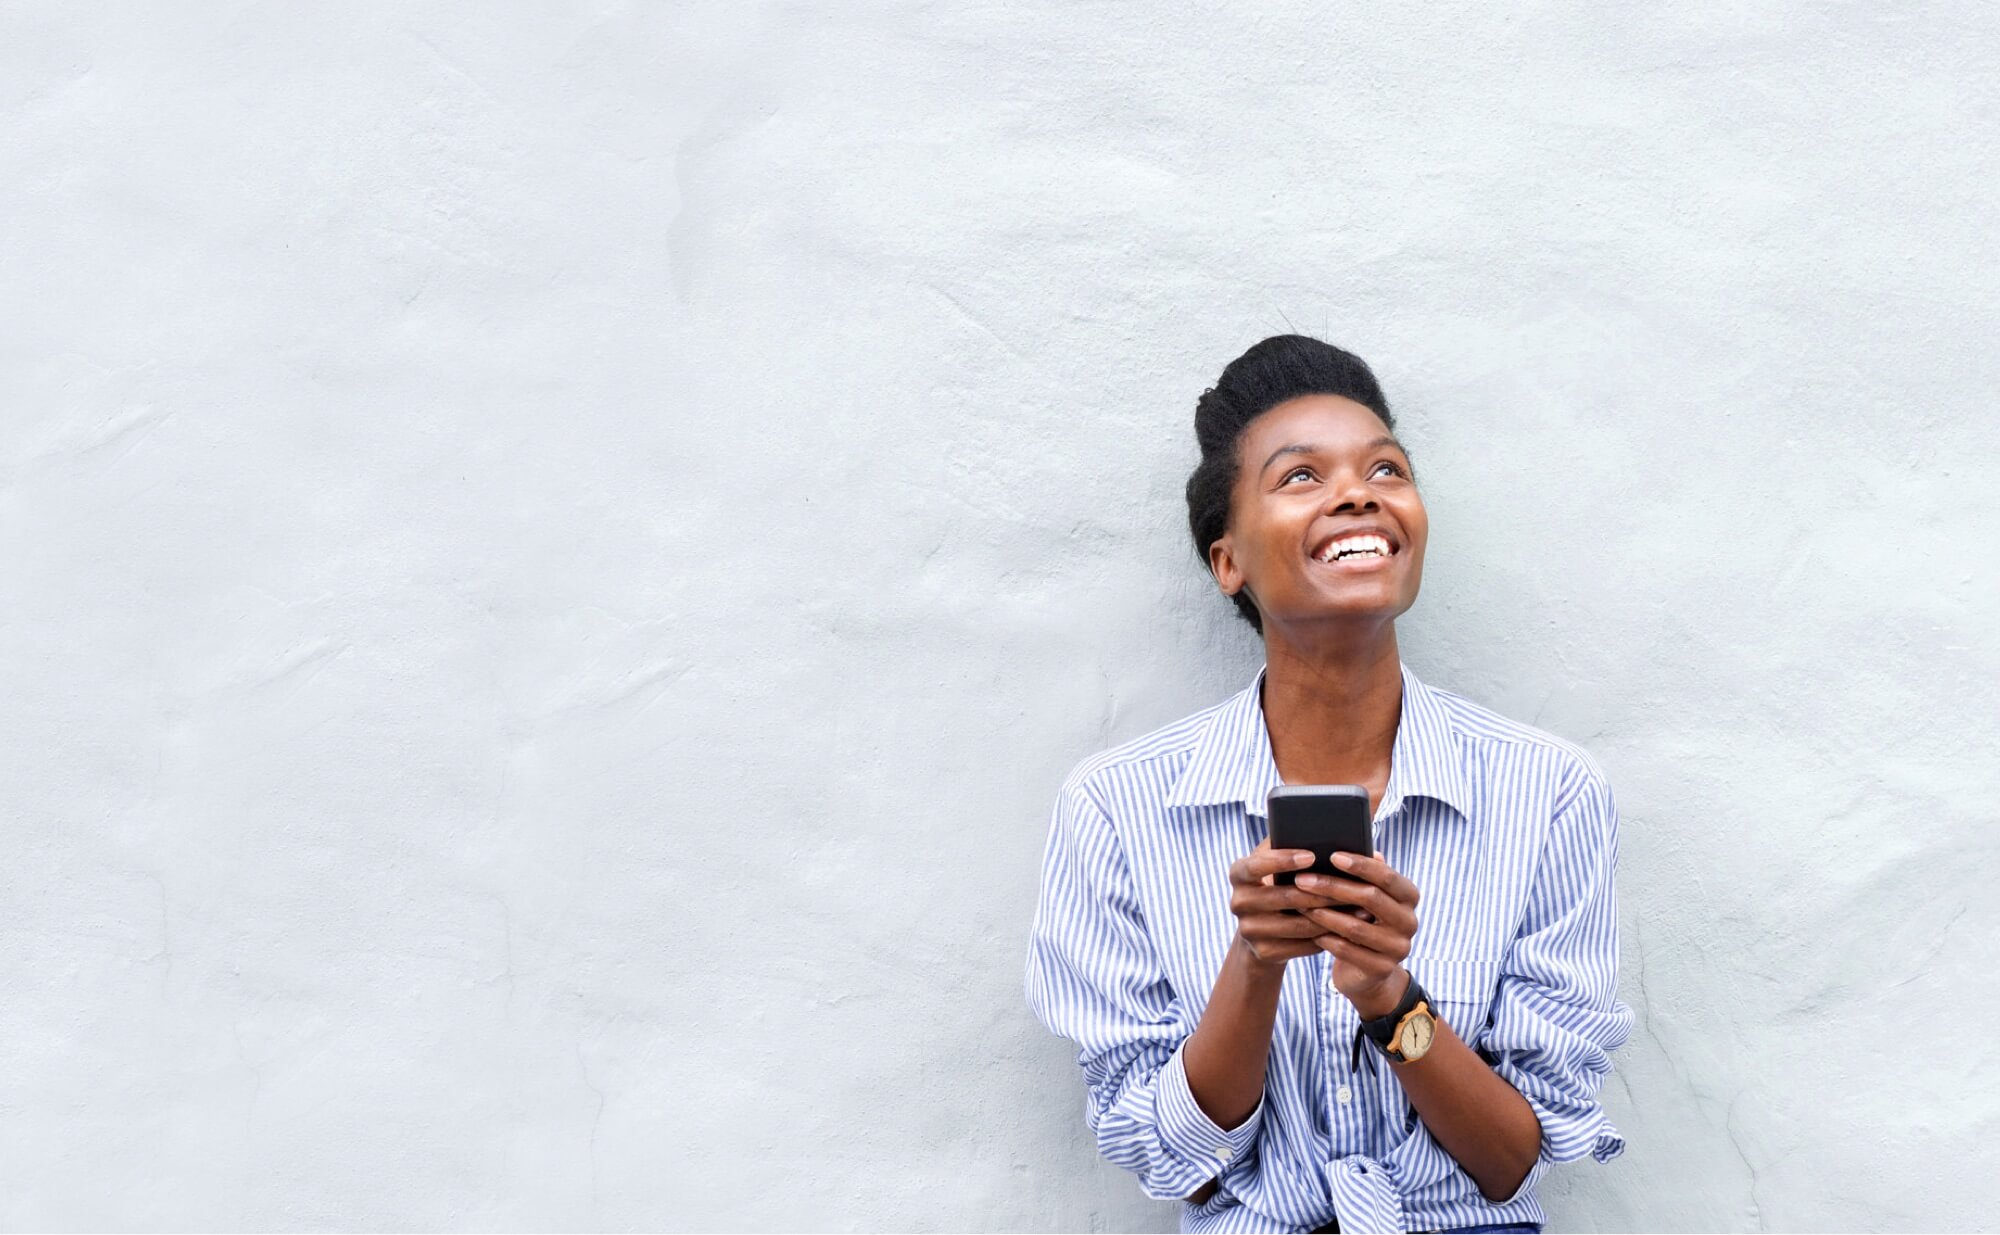 Afro American Girl Texting On Her Phone And Smiling